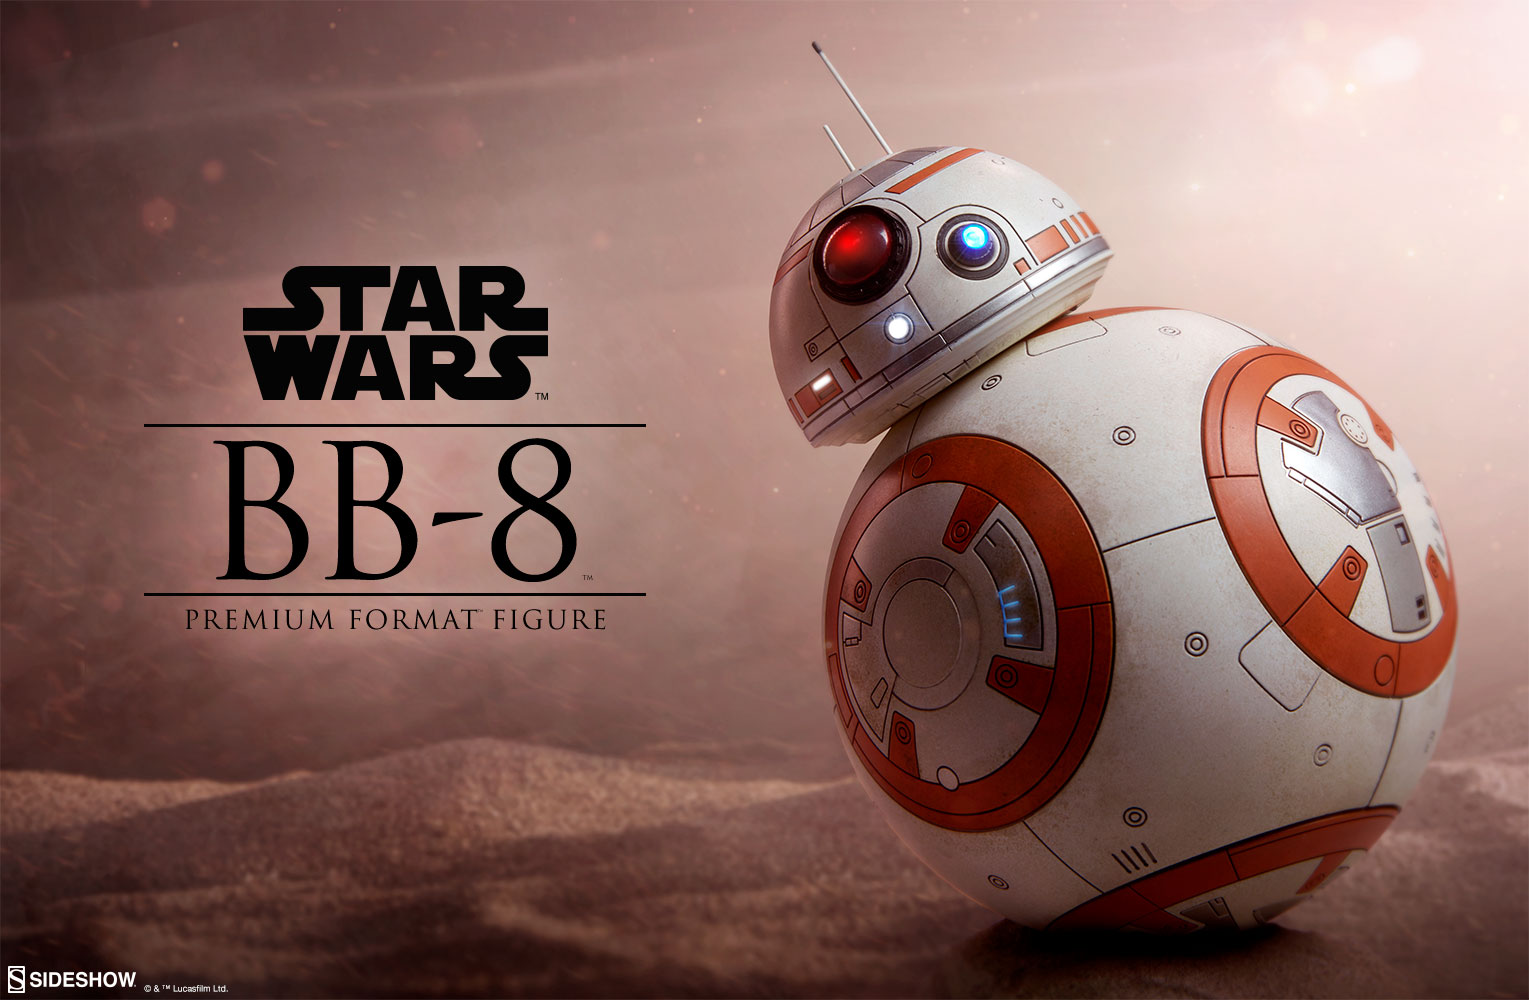 star wars bb 8 premium format tm figure by sideshow collect sideshow collectibles. Black Bedroom Furniture Sets. Home Design Ideas